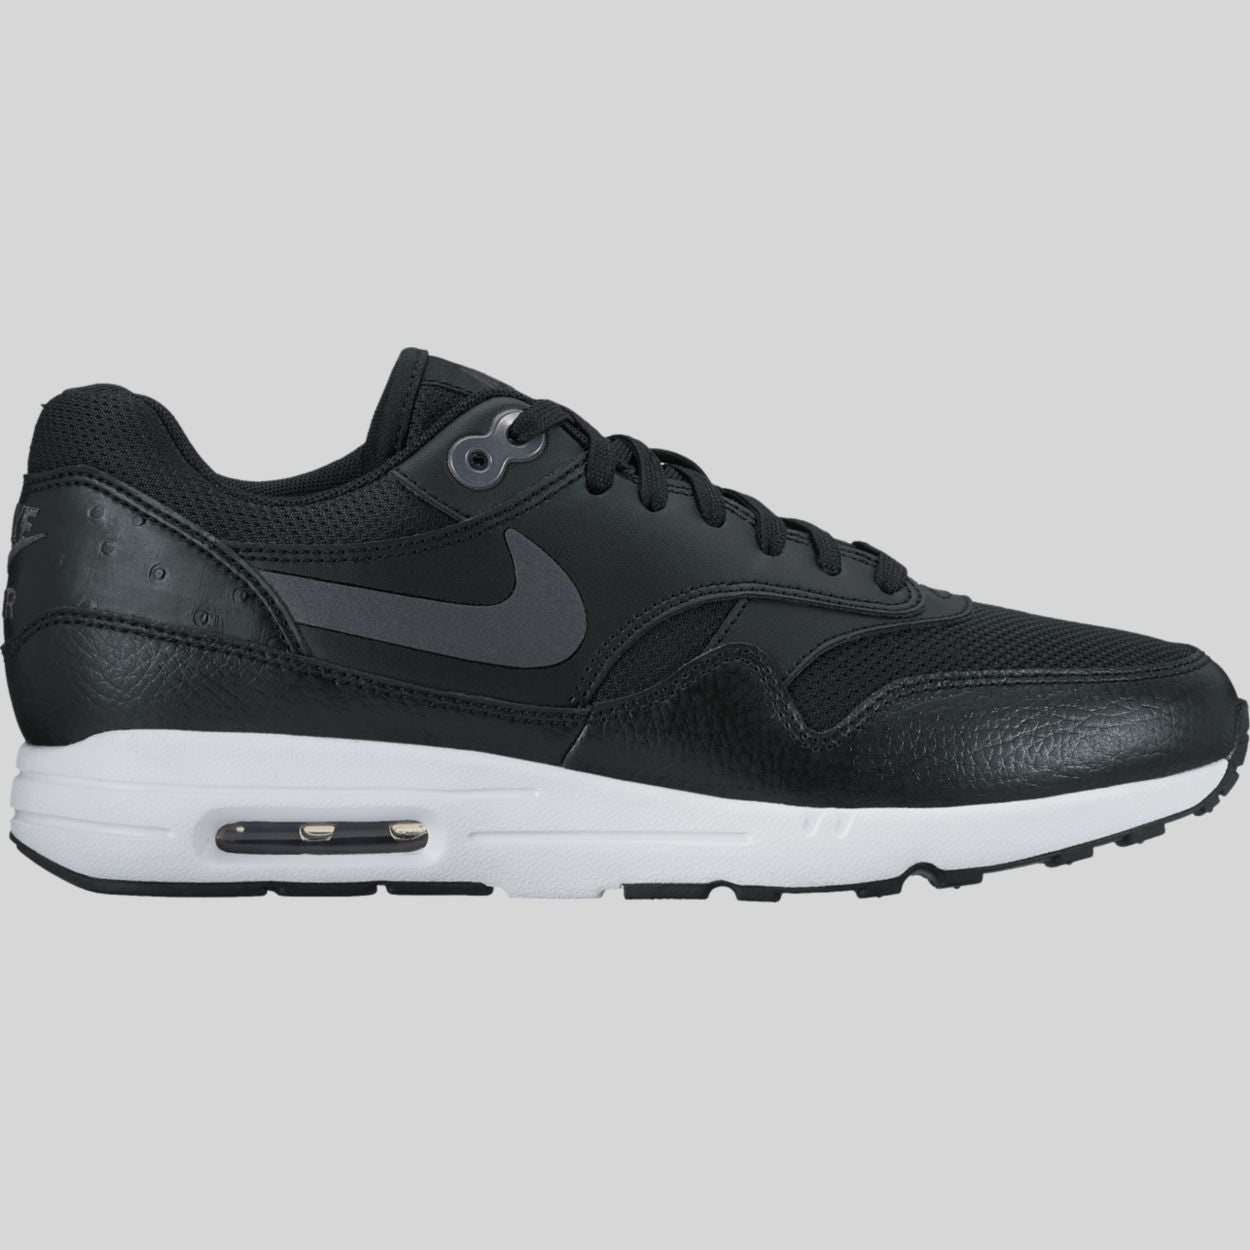 9067032efedb79 Nike Wmns Air Max 1 Ultra 2.0 Black Metallic Hematite White (881104-002)